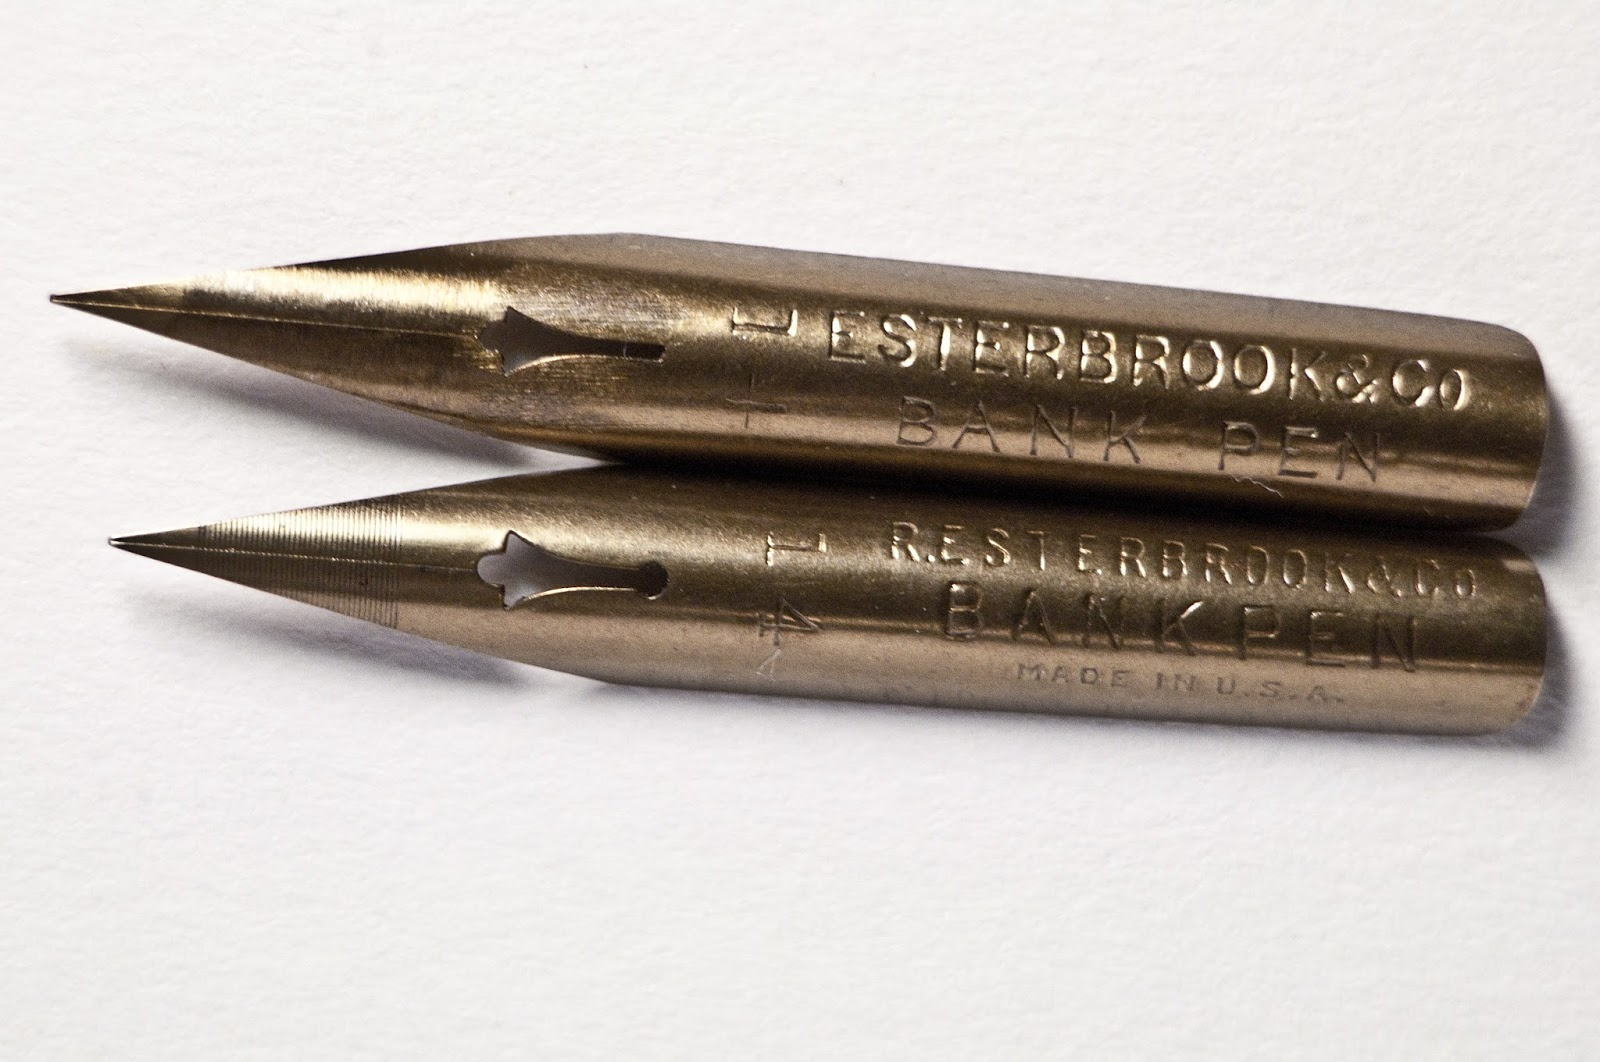 Nib gurus vintage dip pen discussion radio pen 914 why is it so here is what a modern 14 bank pen from 1946 looks like in comparison to the 1876 version you can see the older version is longer than the newer version altavistaventures Images